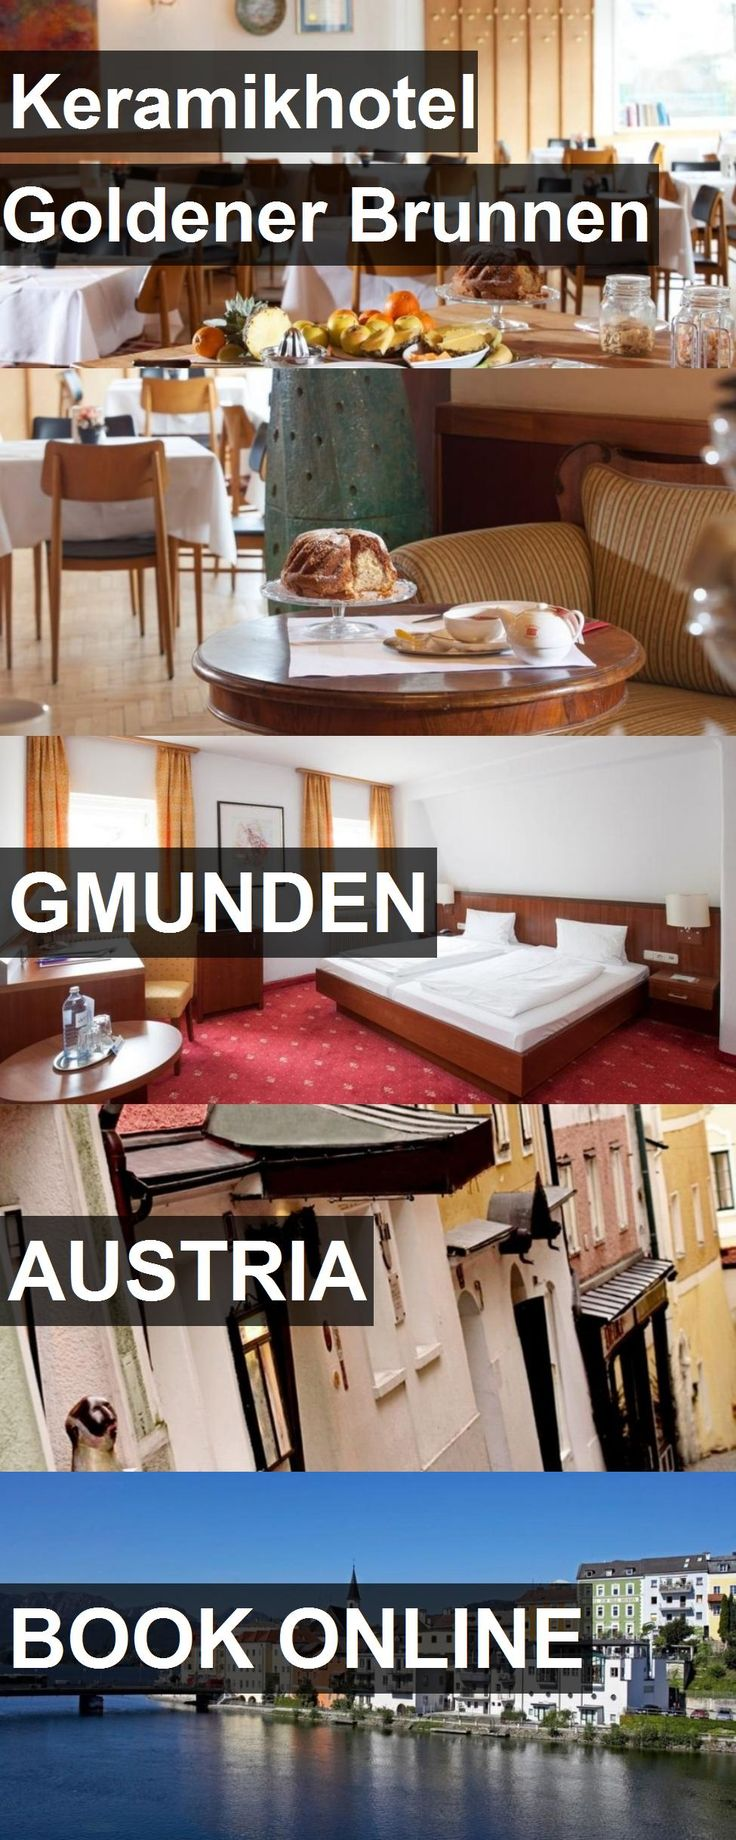 Hotel Keramikhotel Goldener Brunnen in Gmunden, Austria. For more information, photos, reviews and best prices please follow the link. #Austria #Gmunden #hotel #travel #vacation